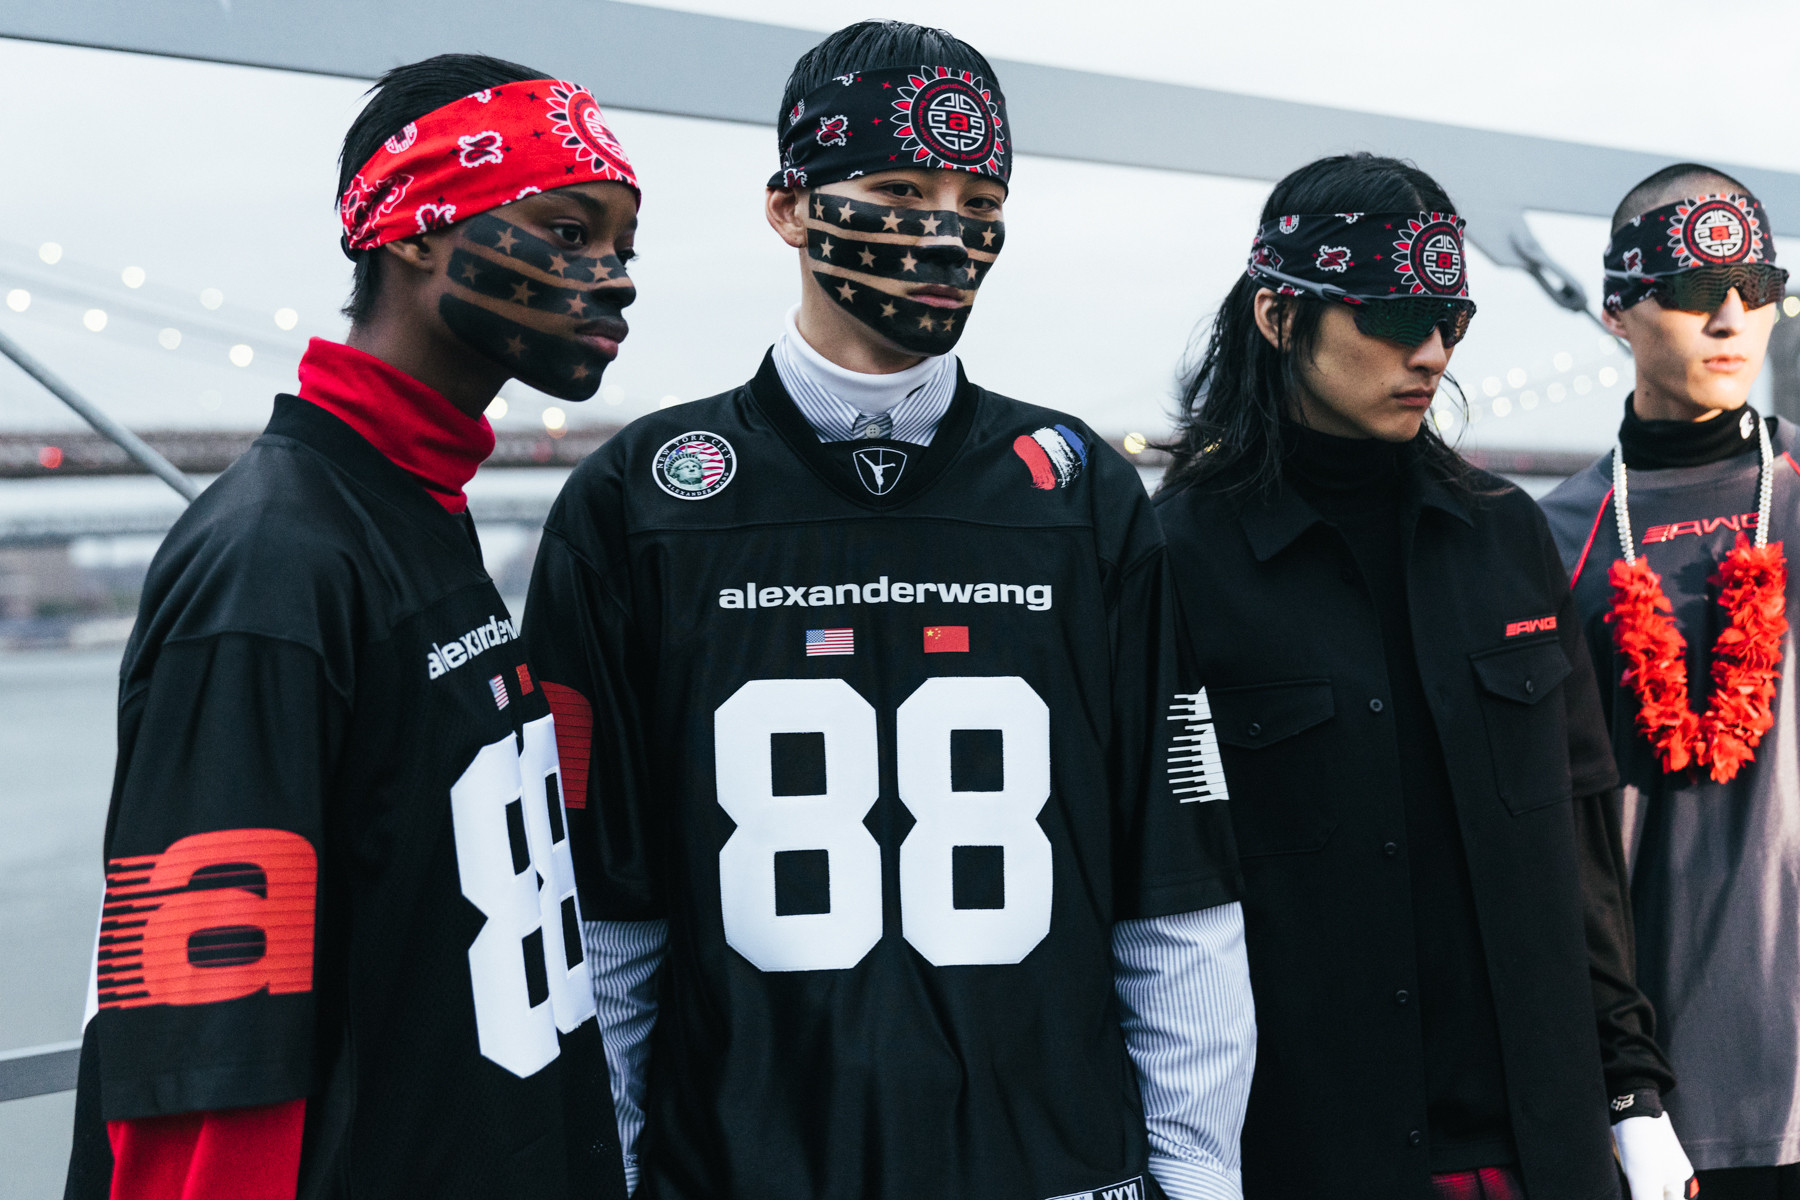 https---hypebeast.com-image-2018-06-alexander-wang-collection-1-ss19-31